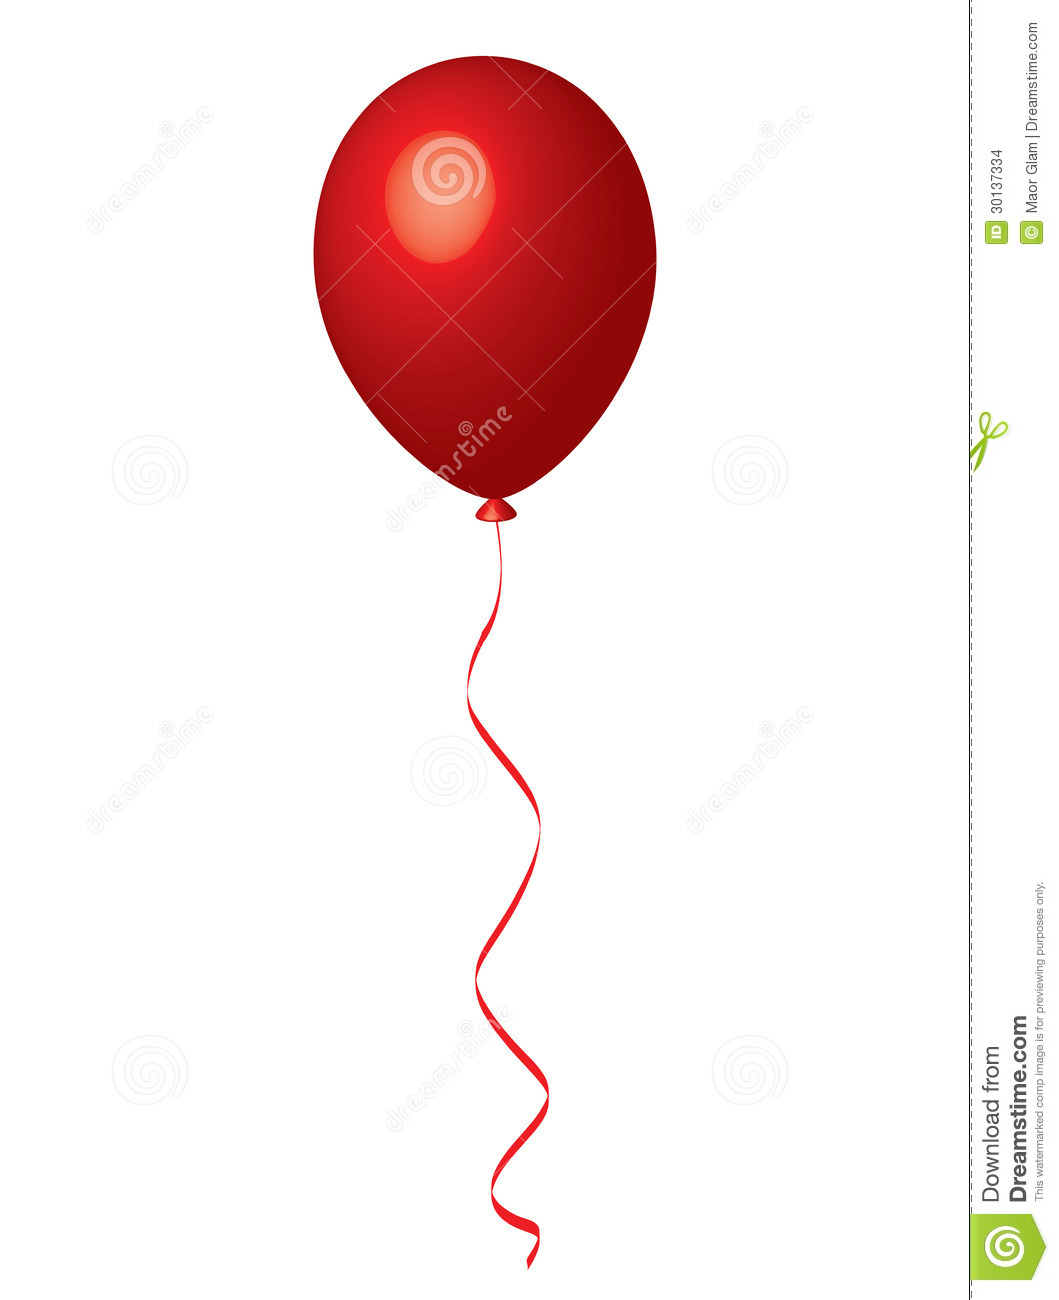 Red Balloon Stock Images - Image: 30137334